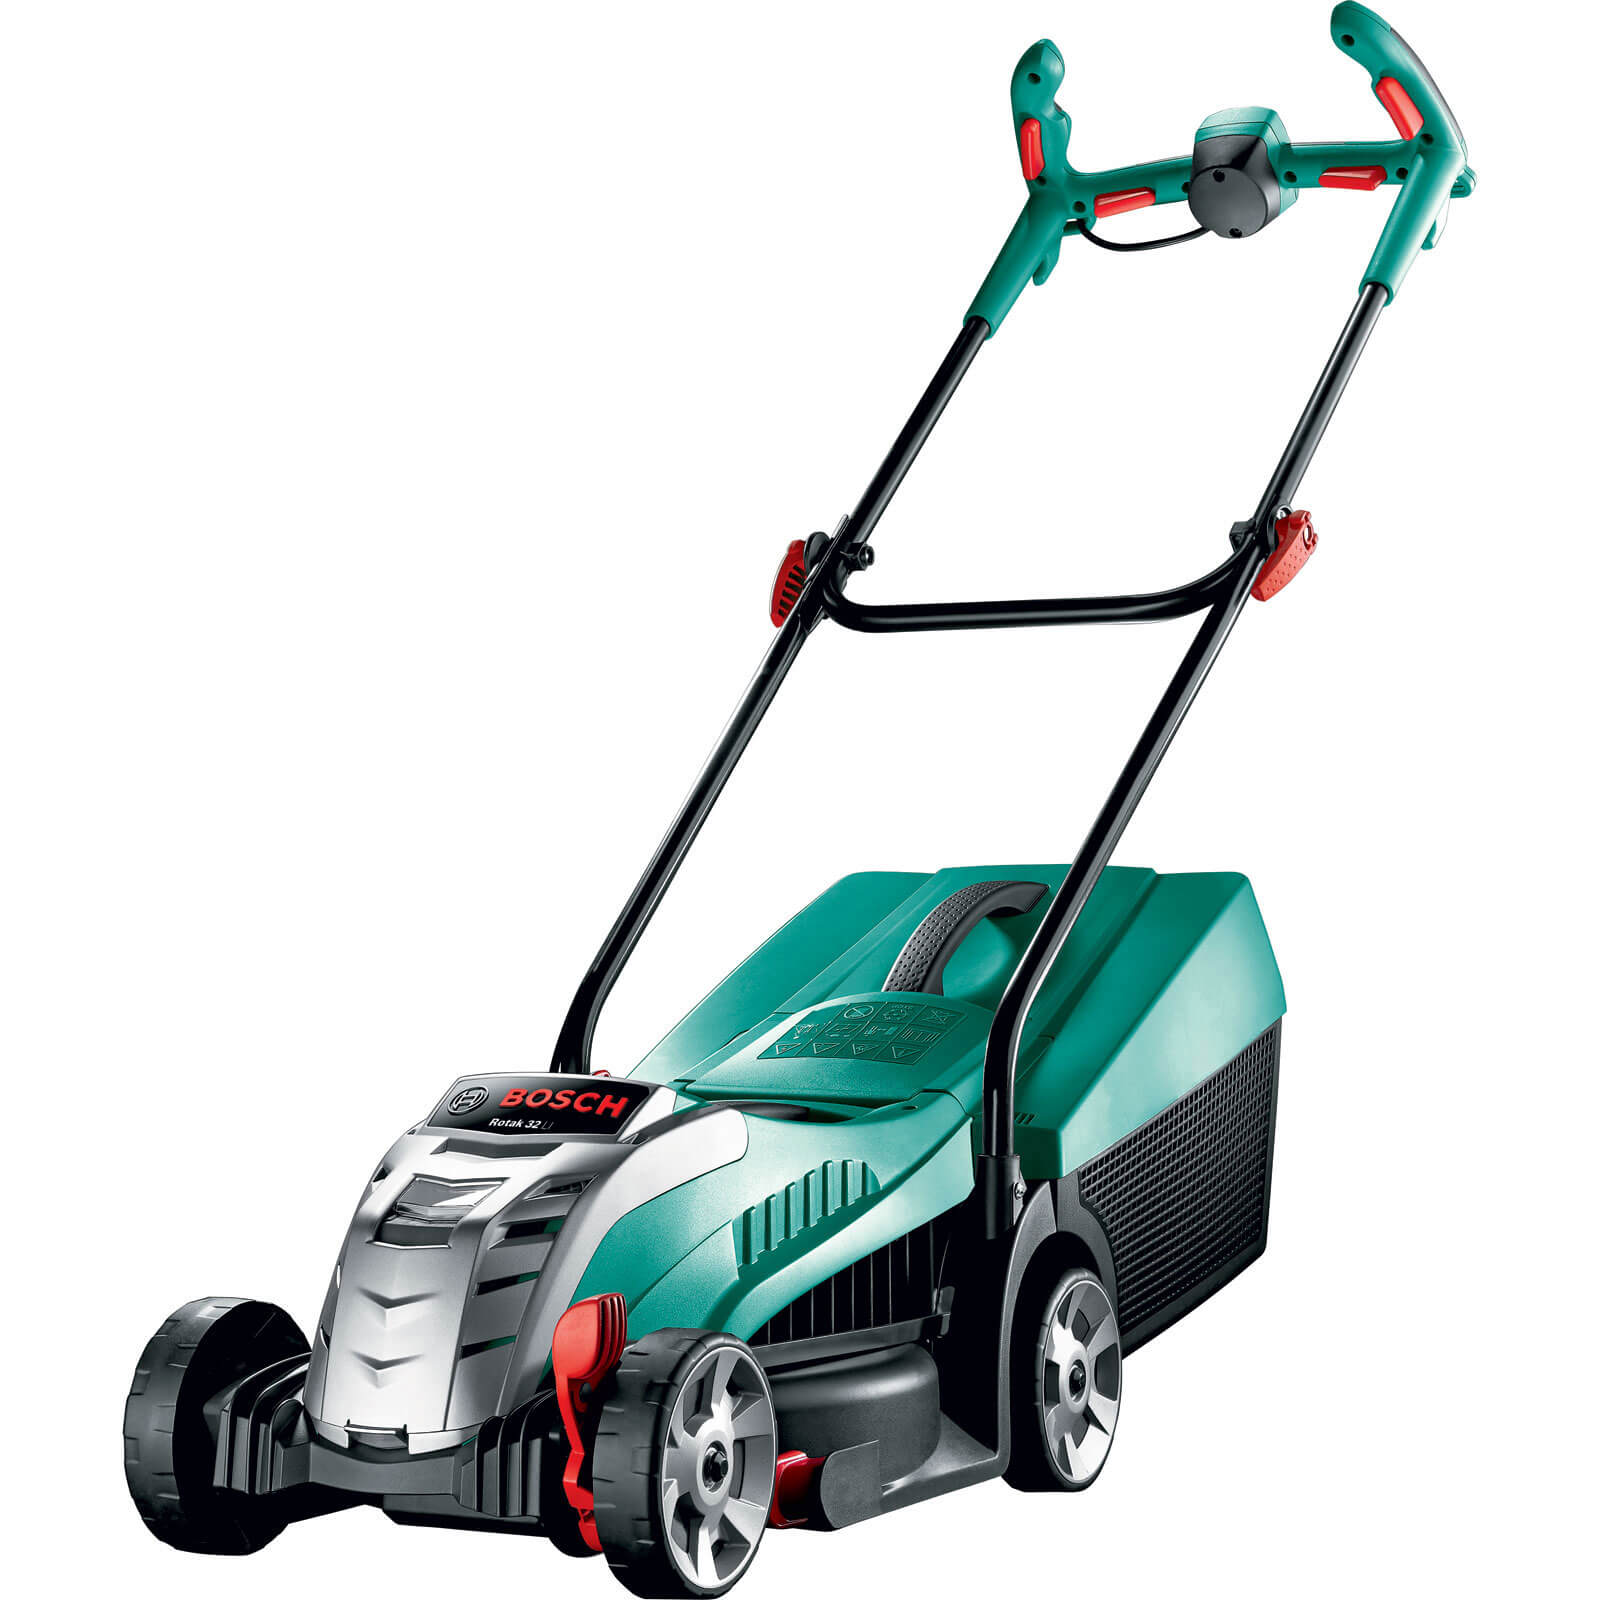 Bosch ROTAK 32 LI ERGOFLEX 36v Cordless Rotary Lawnmower 320mm Cut Width with 1 Lithium Ion Battery 2.6ah